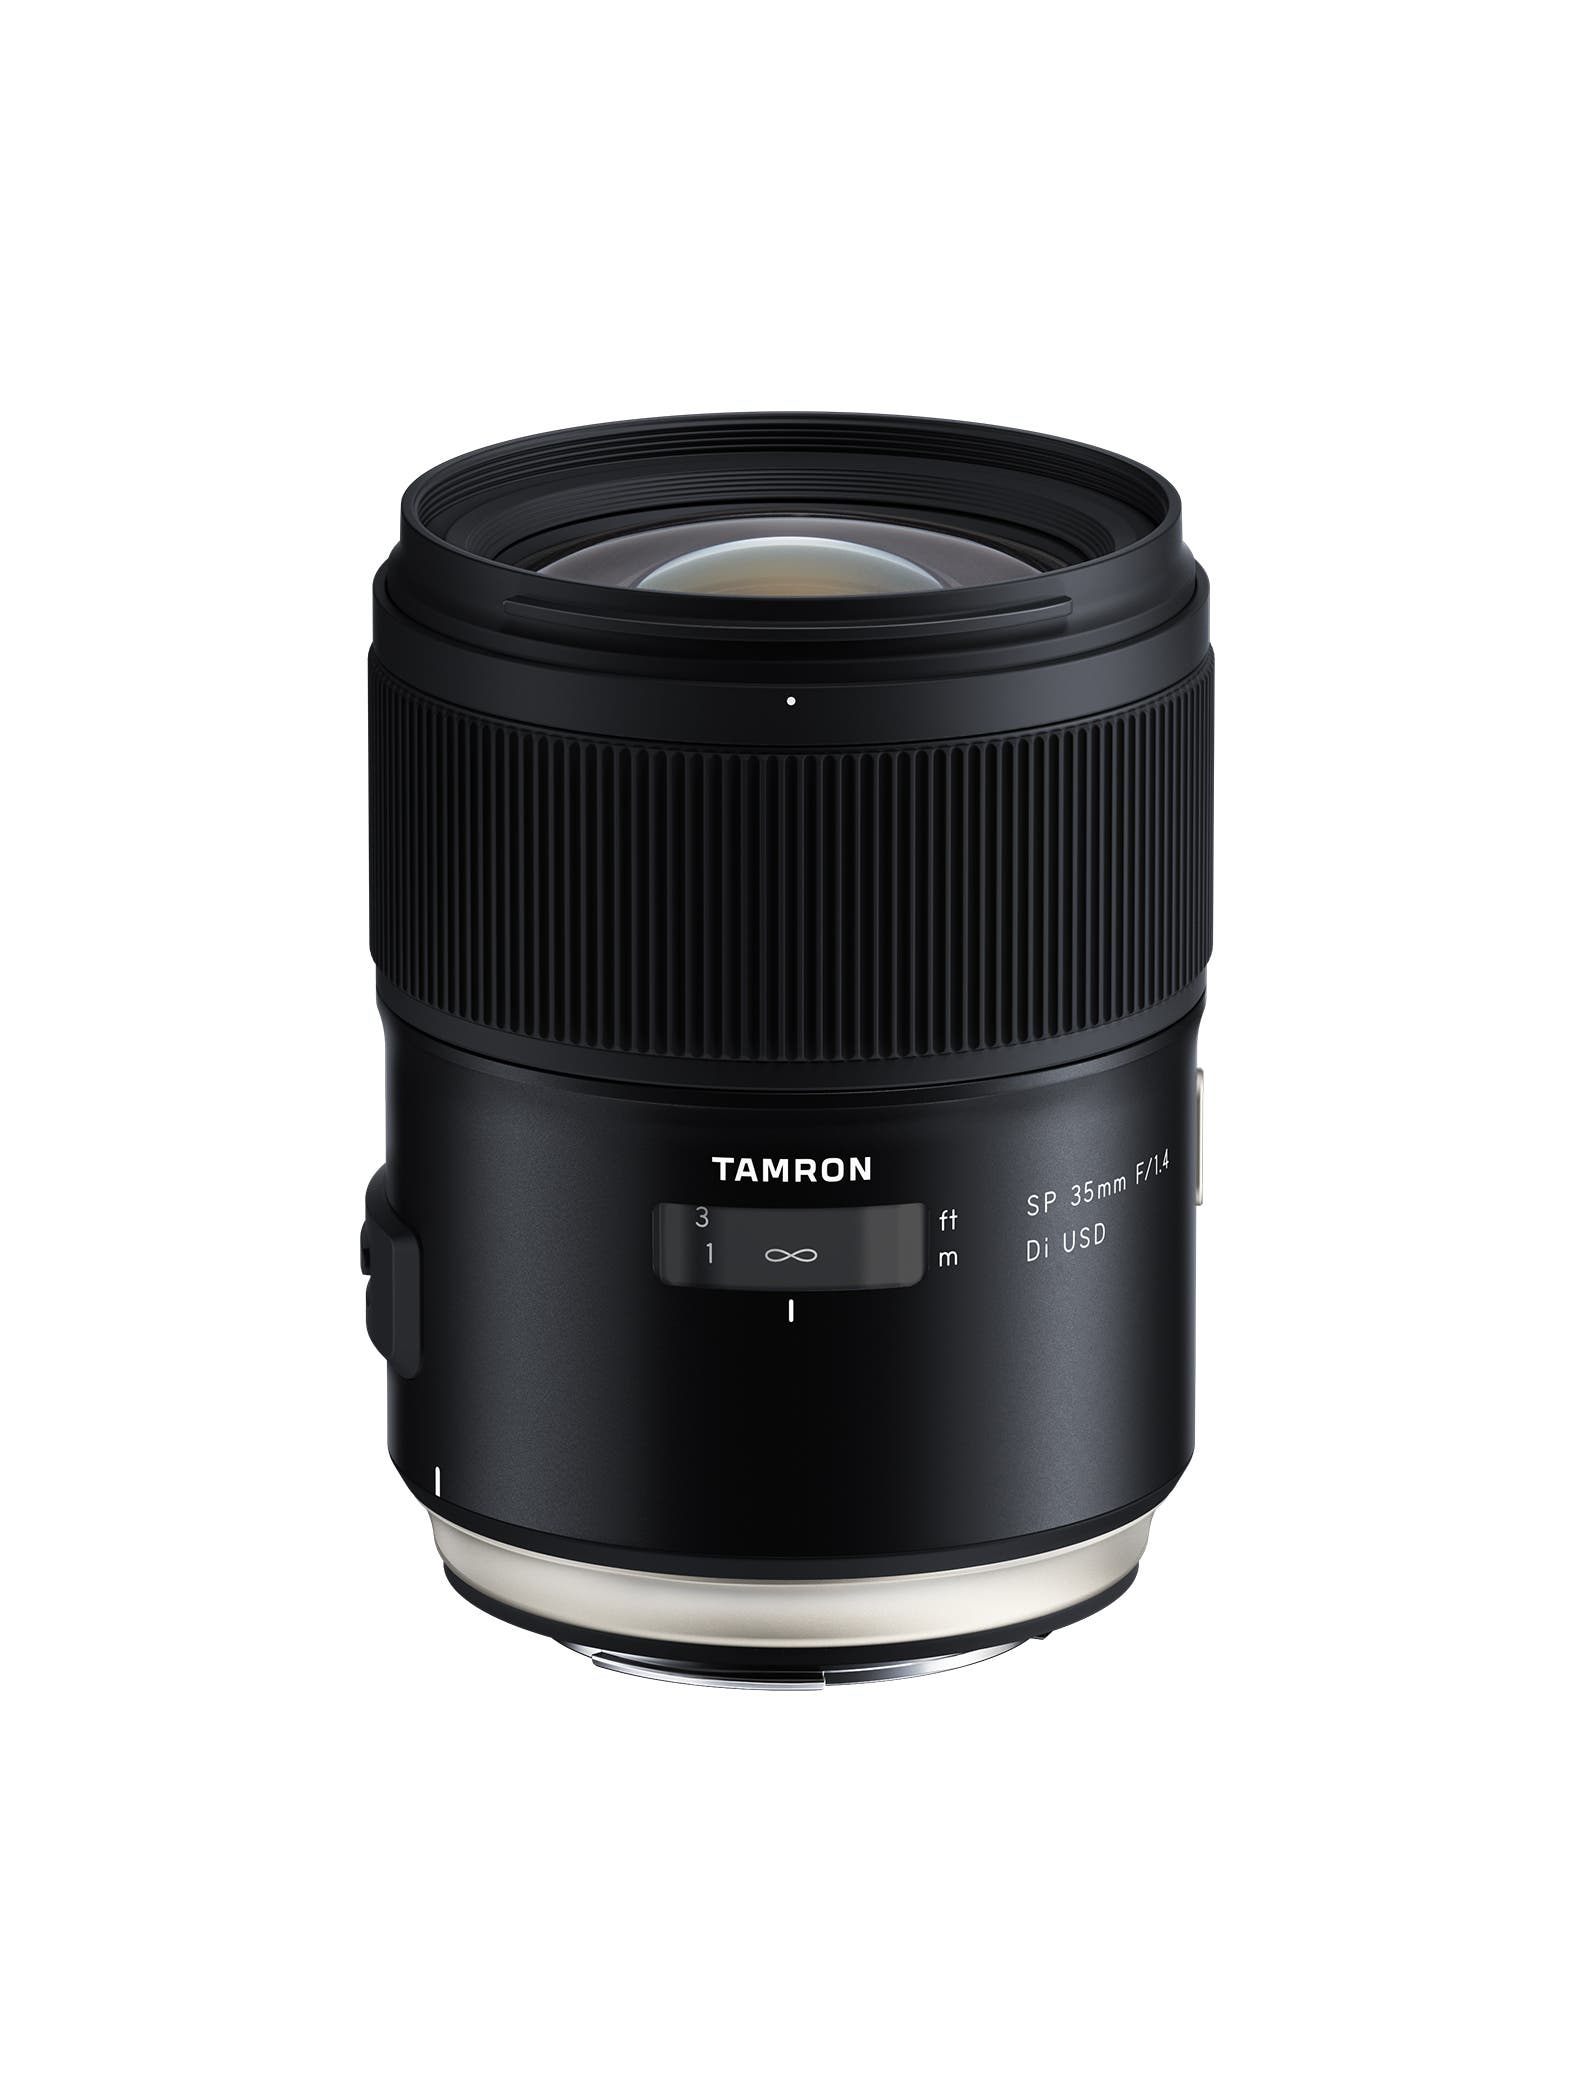 The New Weather Sealed Tamron SP 35mm F1.4 Lens Is Only $899